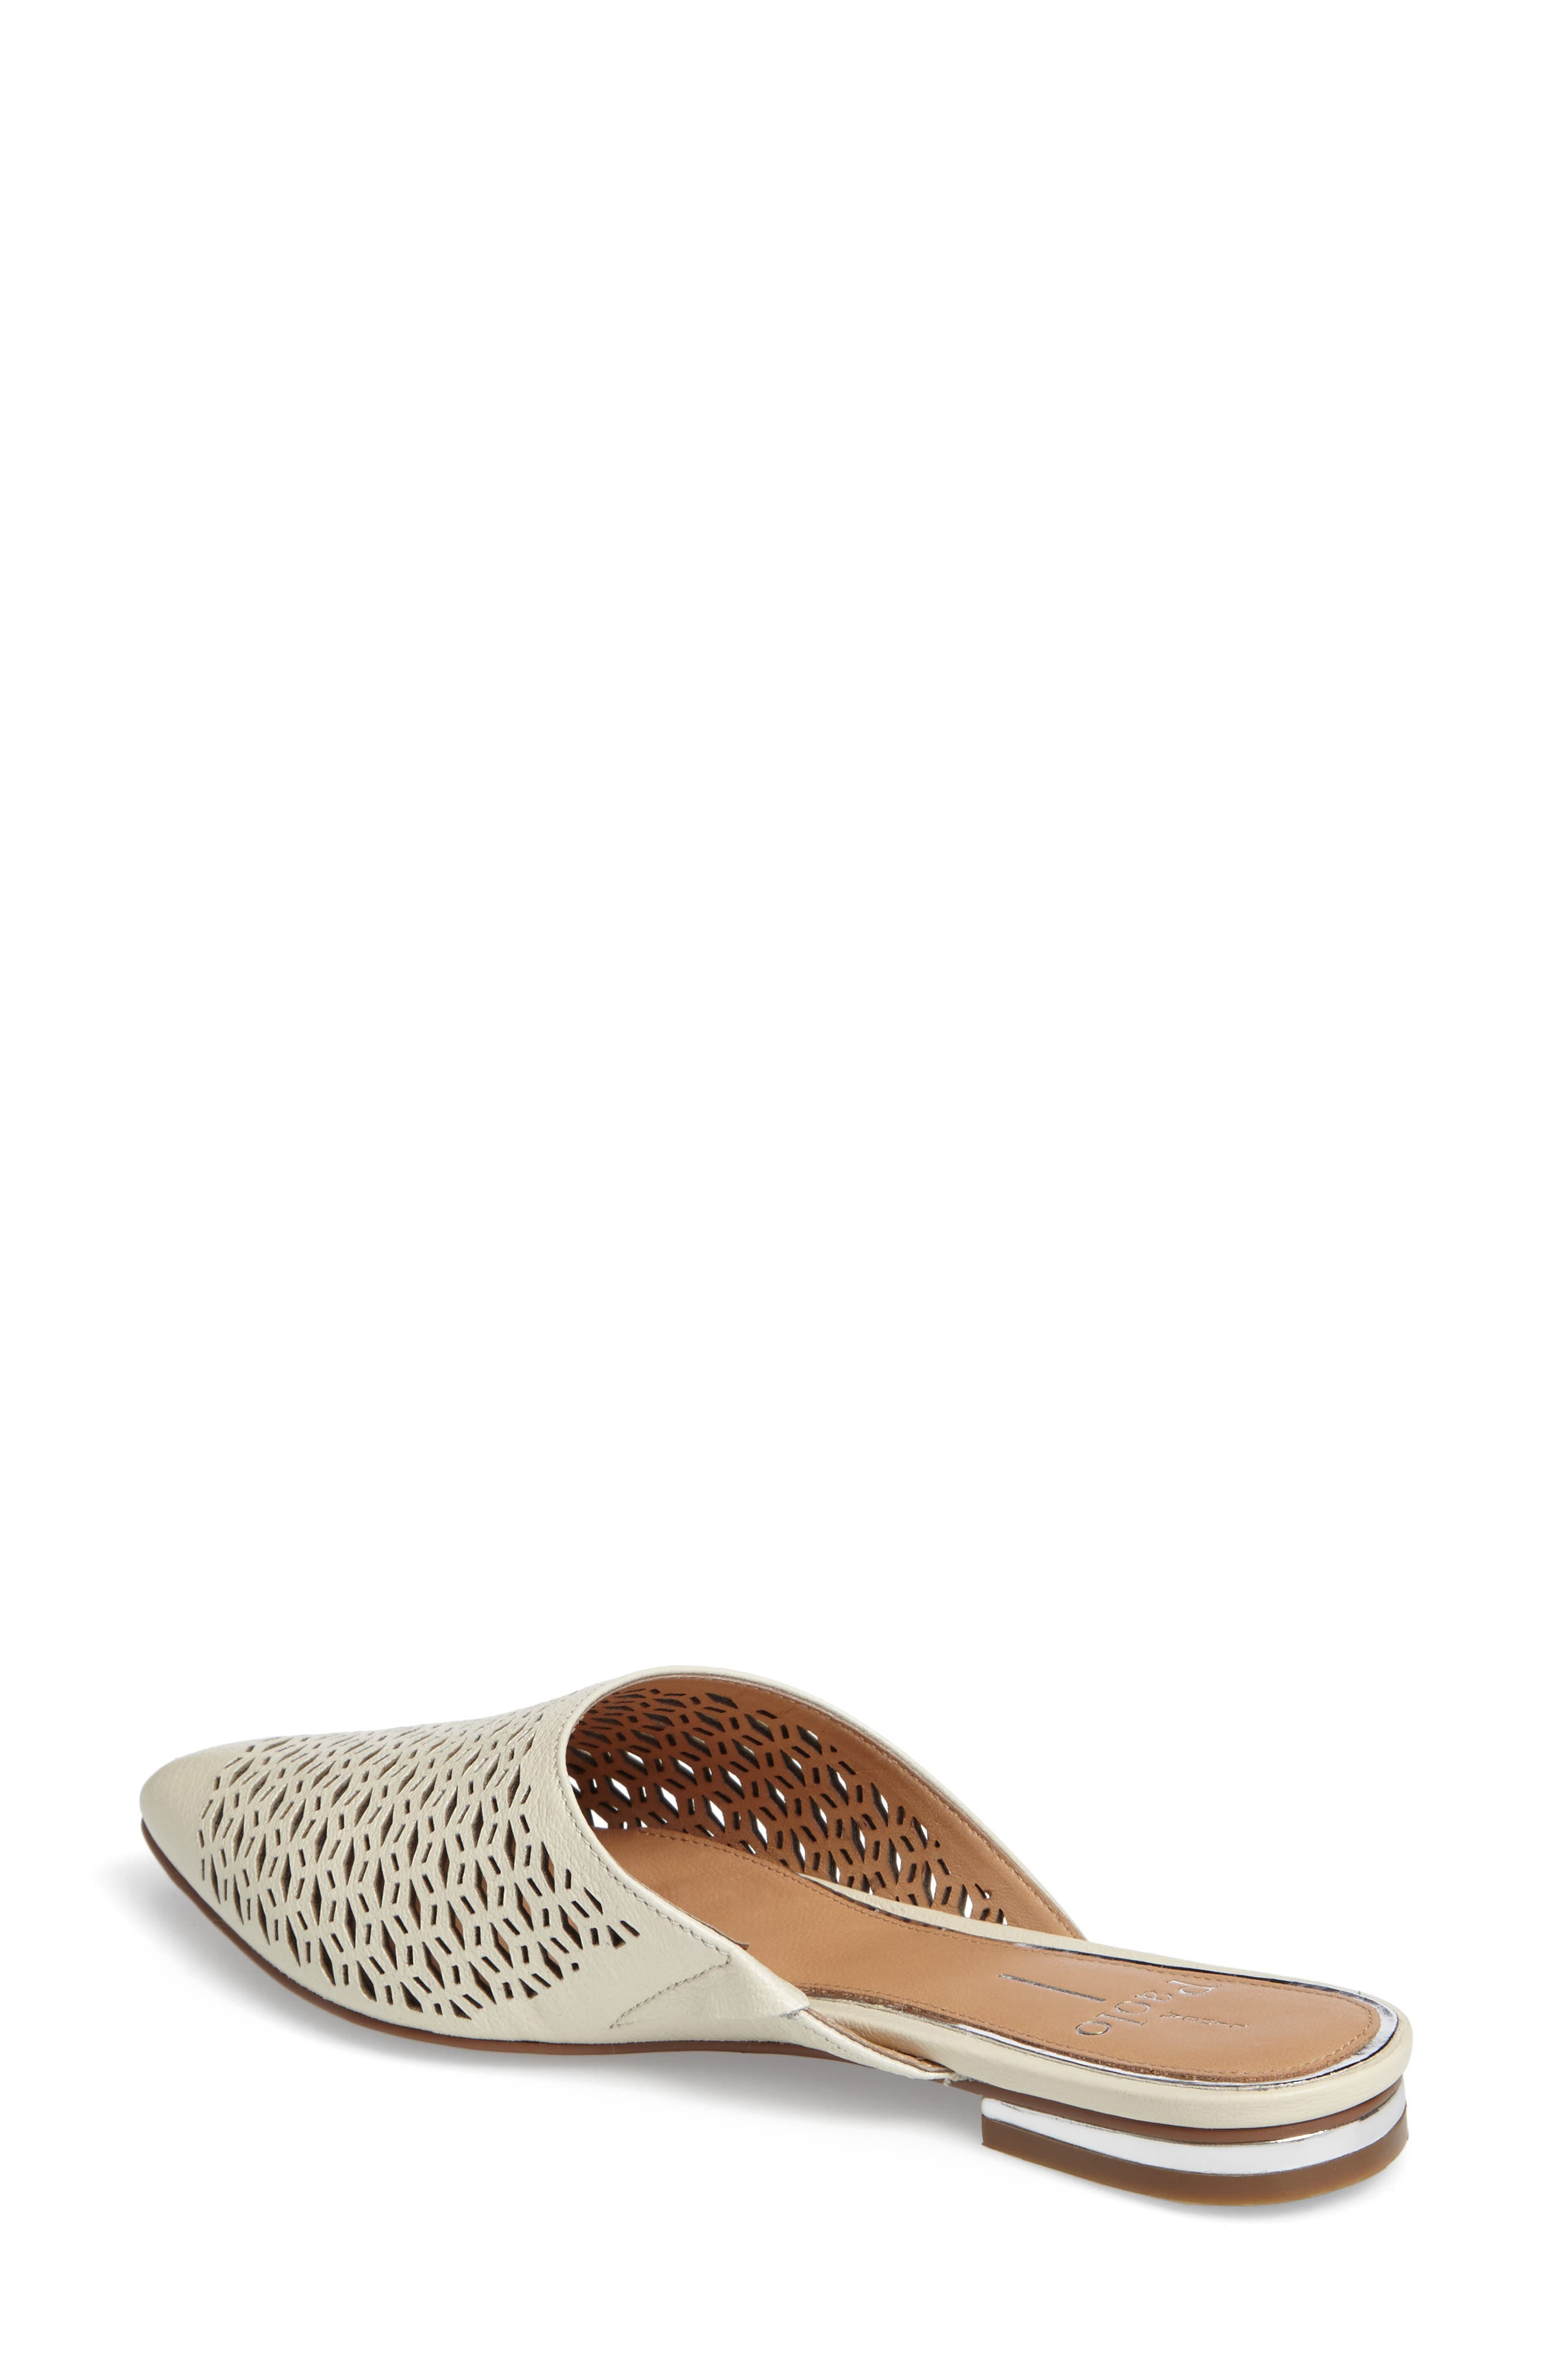 Daisy Perforated Mule,                             Alternate thumbnail 7, color,